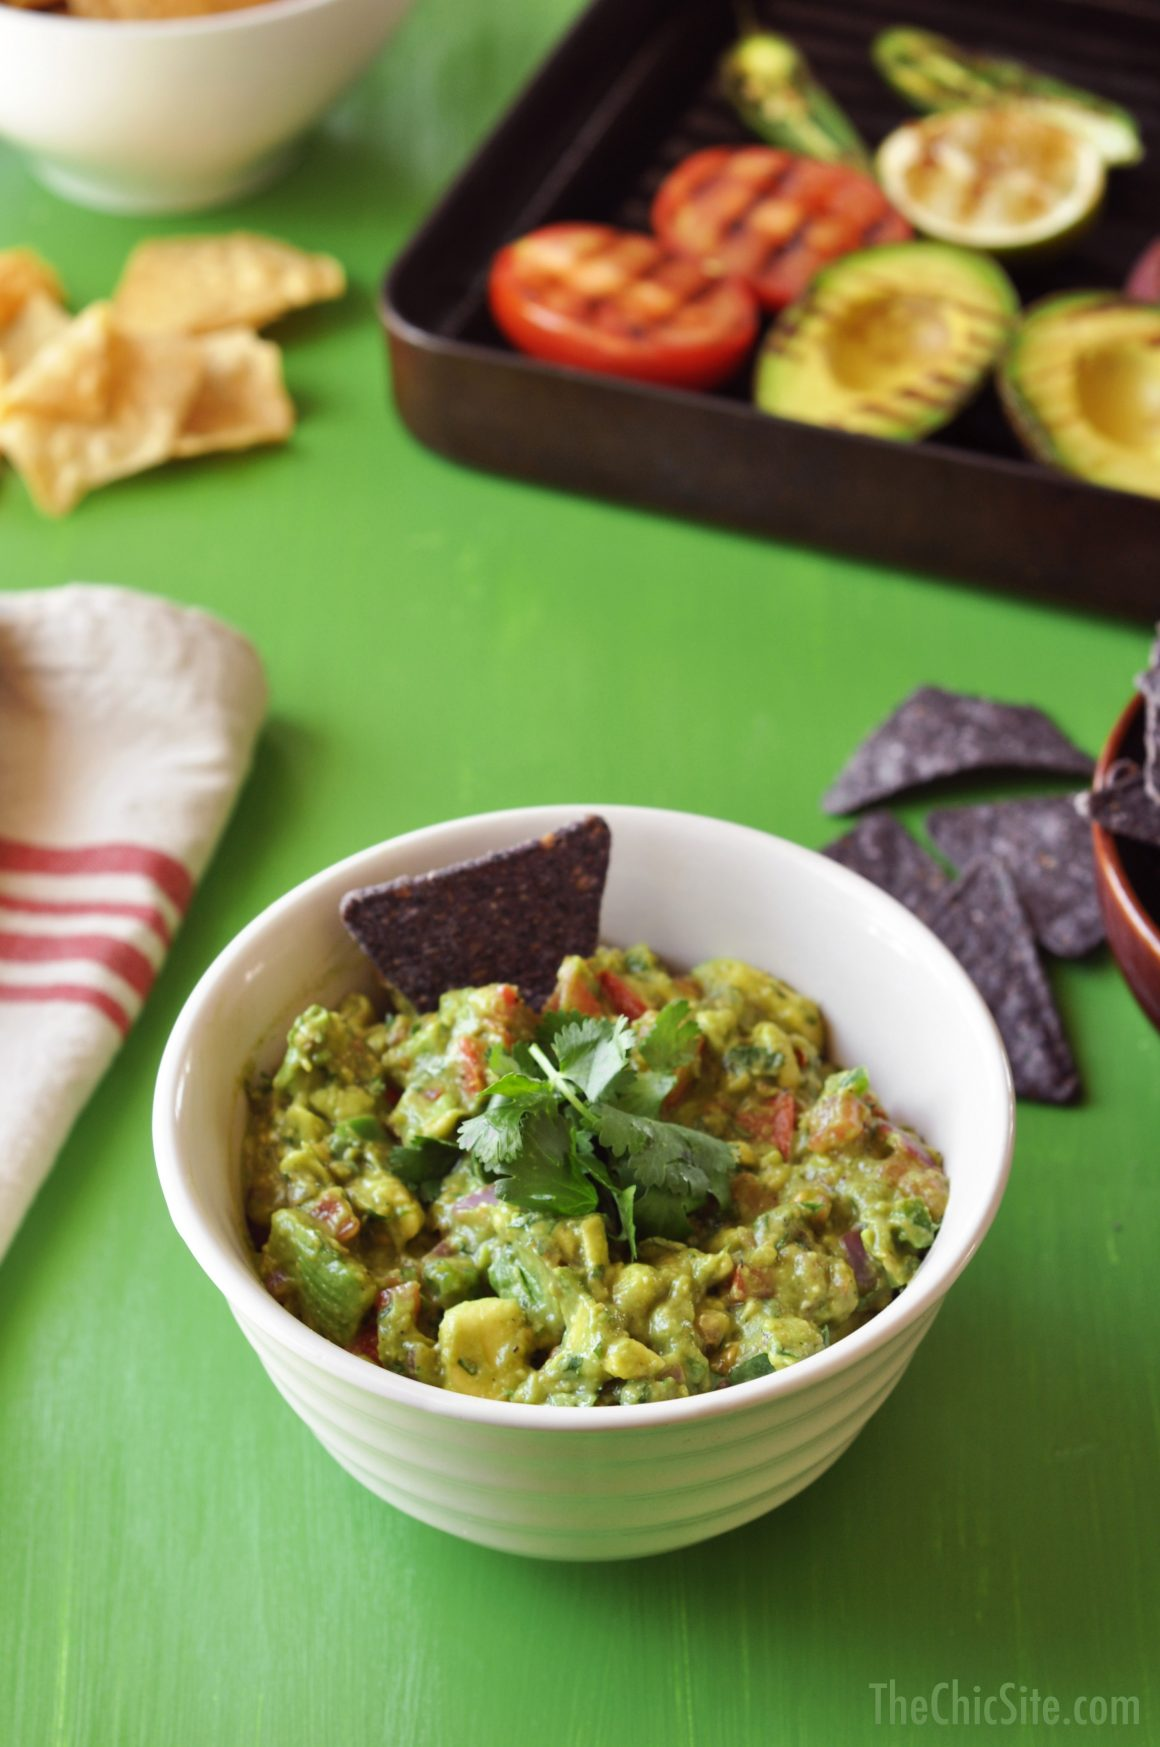 Grilled Guacamole Recipe from The Chic Site